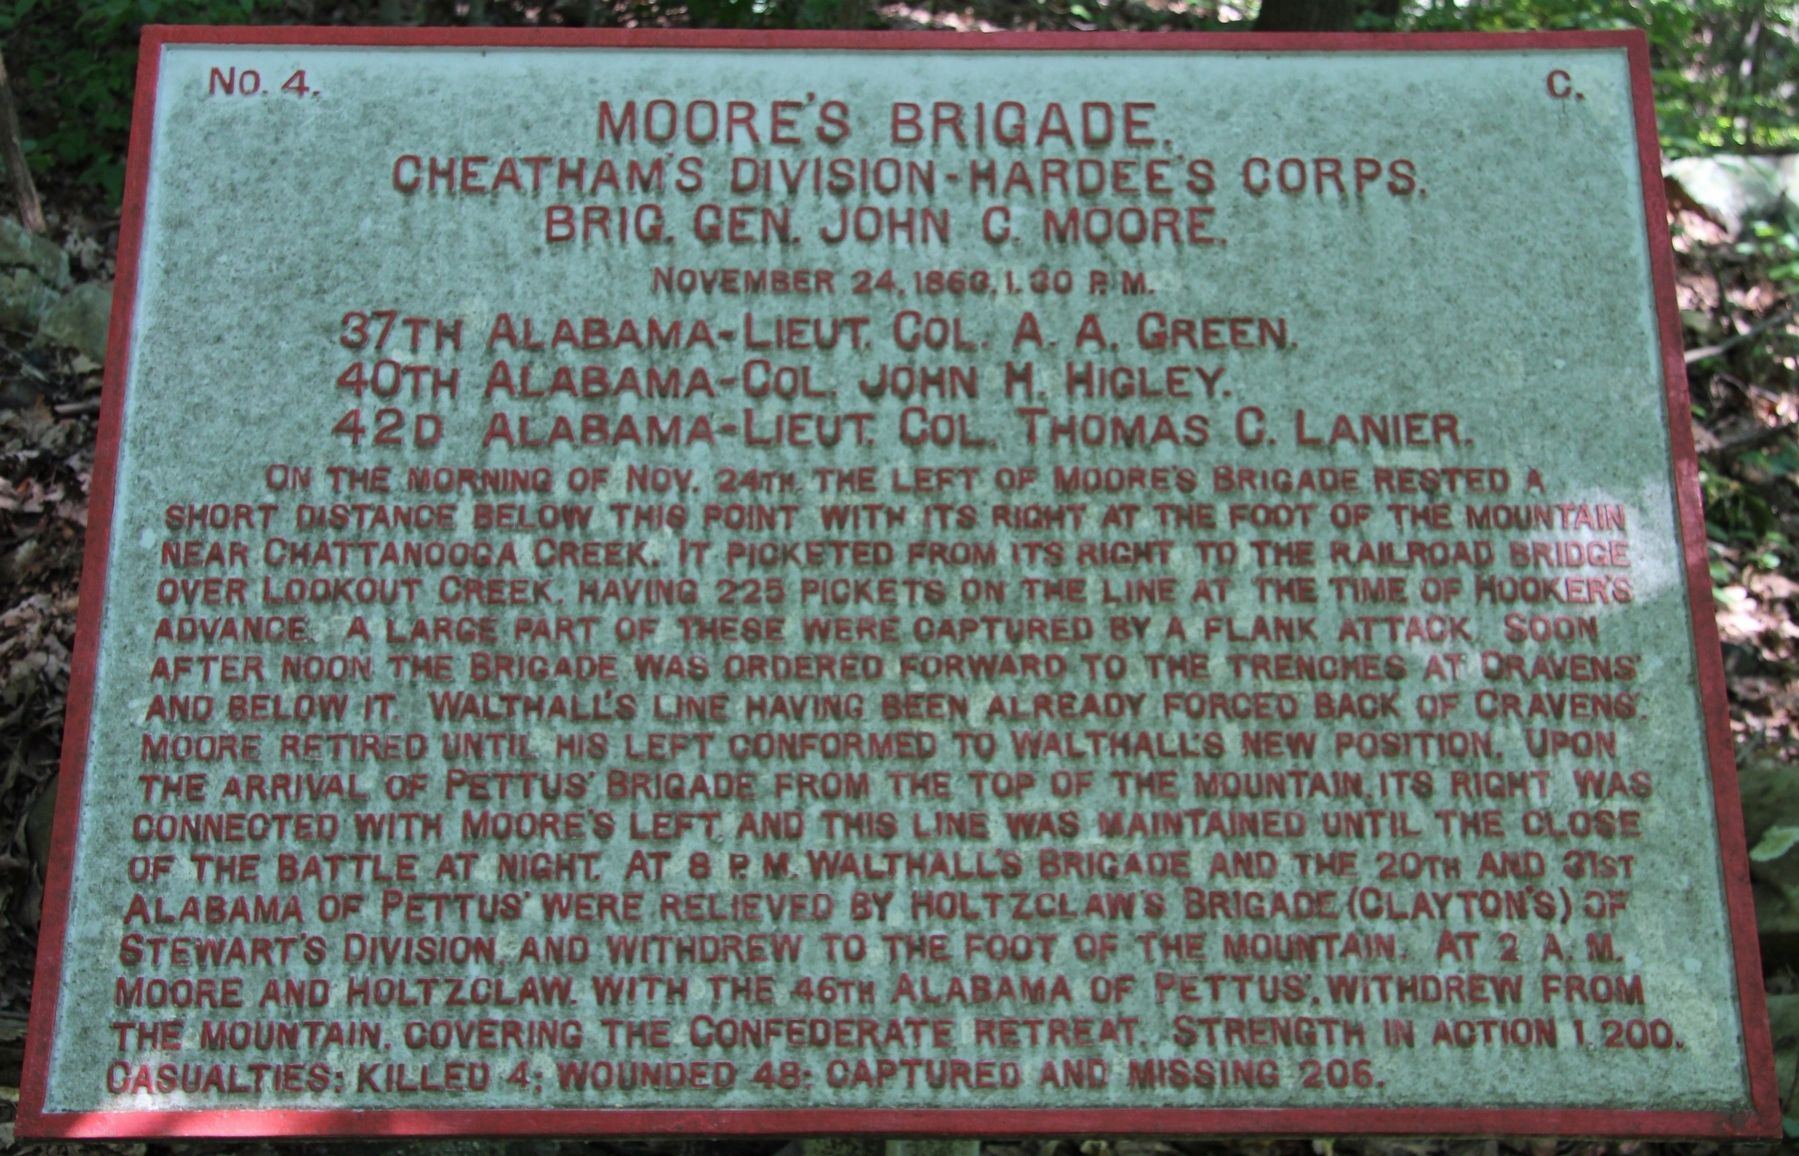 Moore's Brigade Marker image. Click for full size.